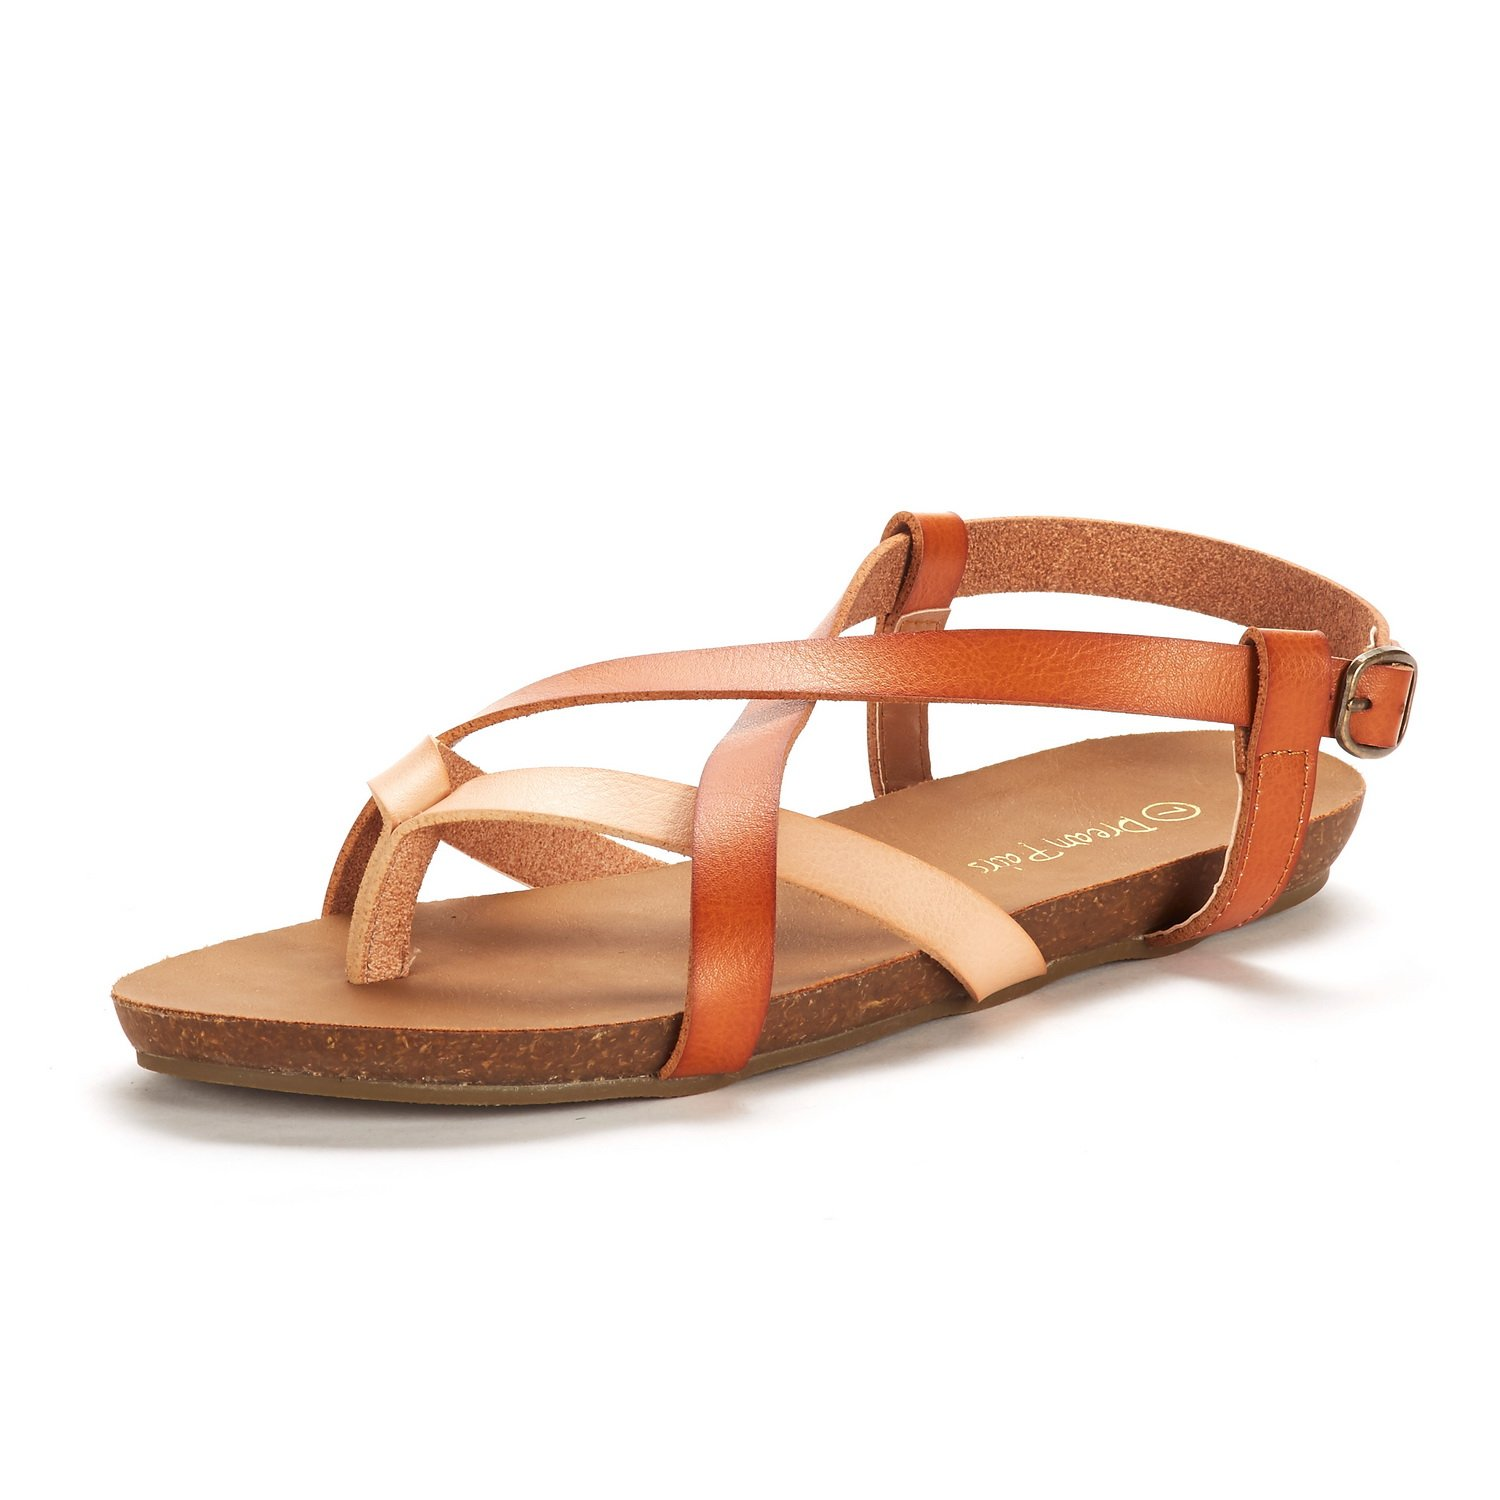 DREAM PAIRS Women's Bold_01 Nude/Tan Fashion Slingback Flat Sandals Size 5.5 M US by DREAM PAIRS